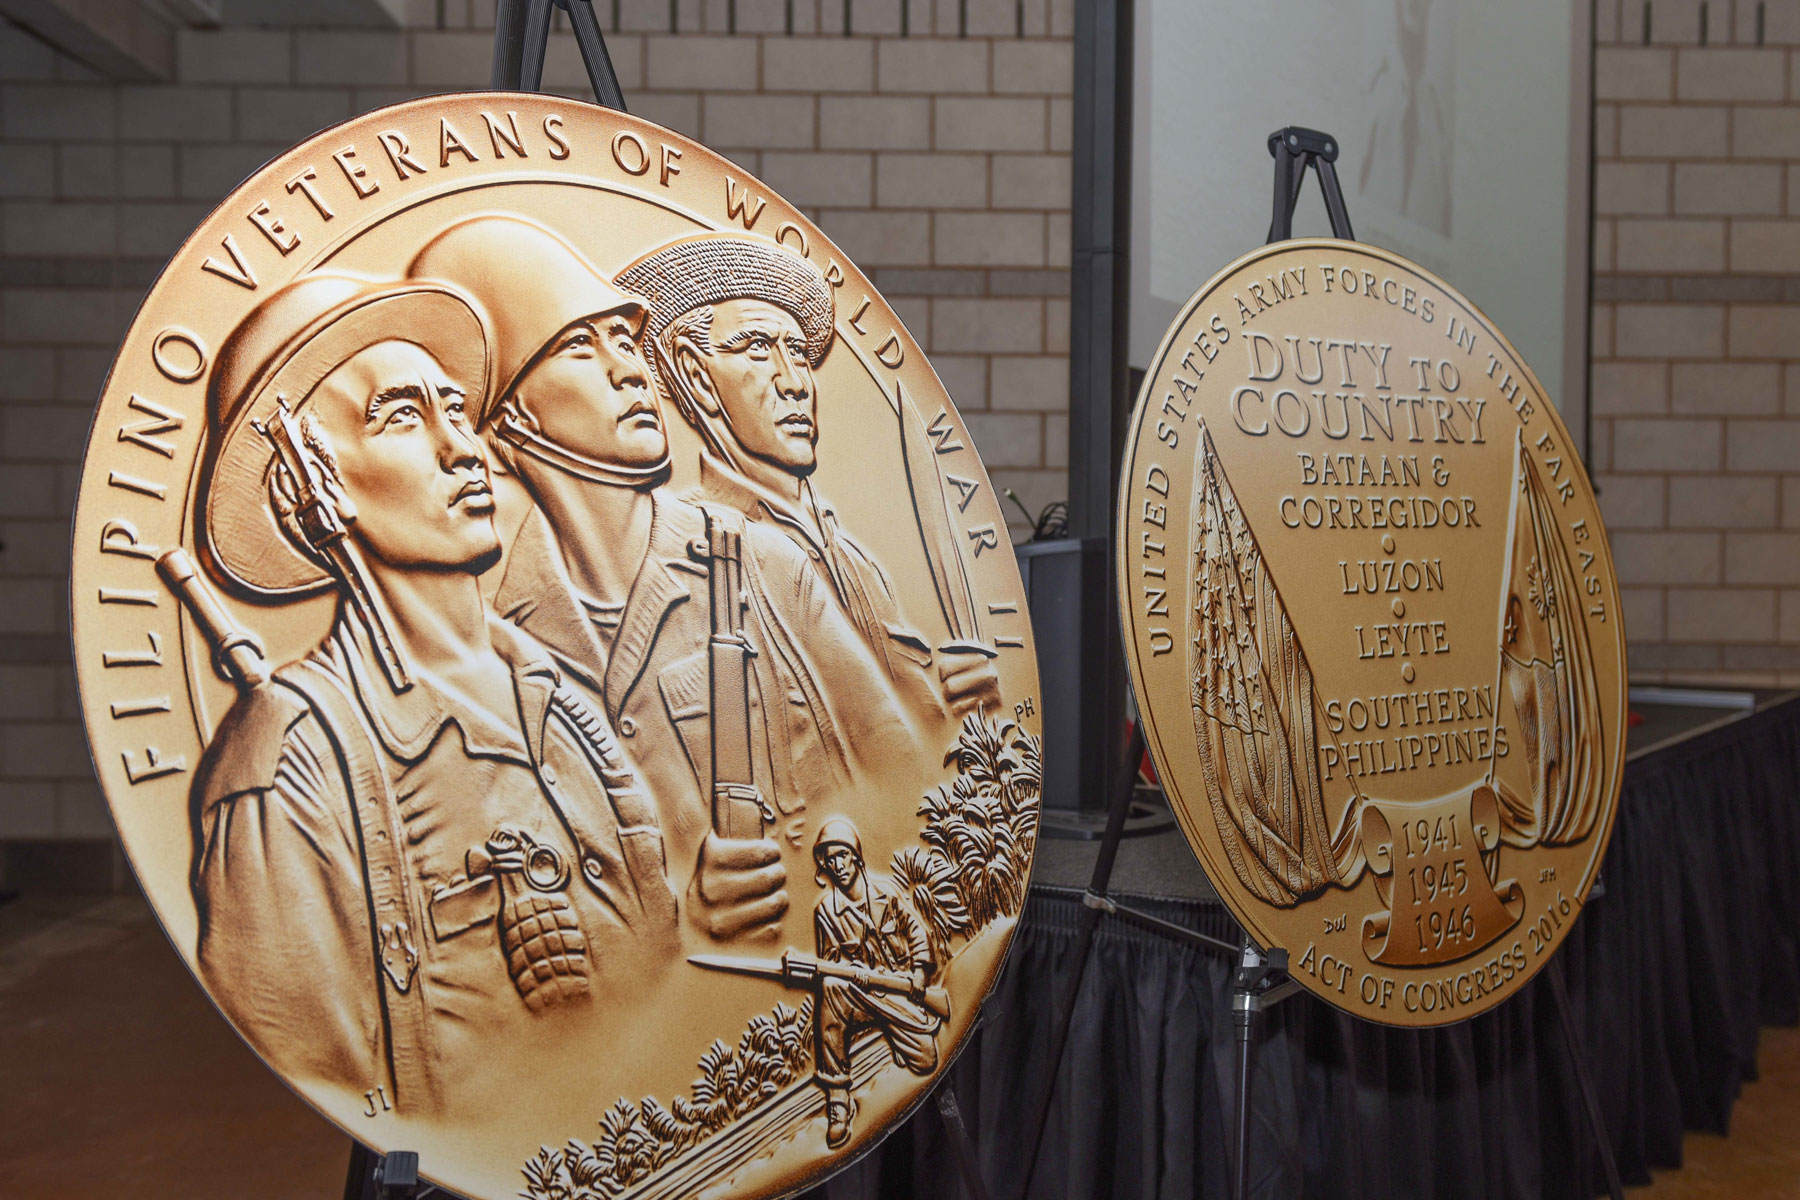 Dyess Awarded Congressional Gold Medal 75 Years After His